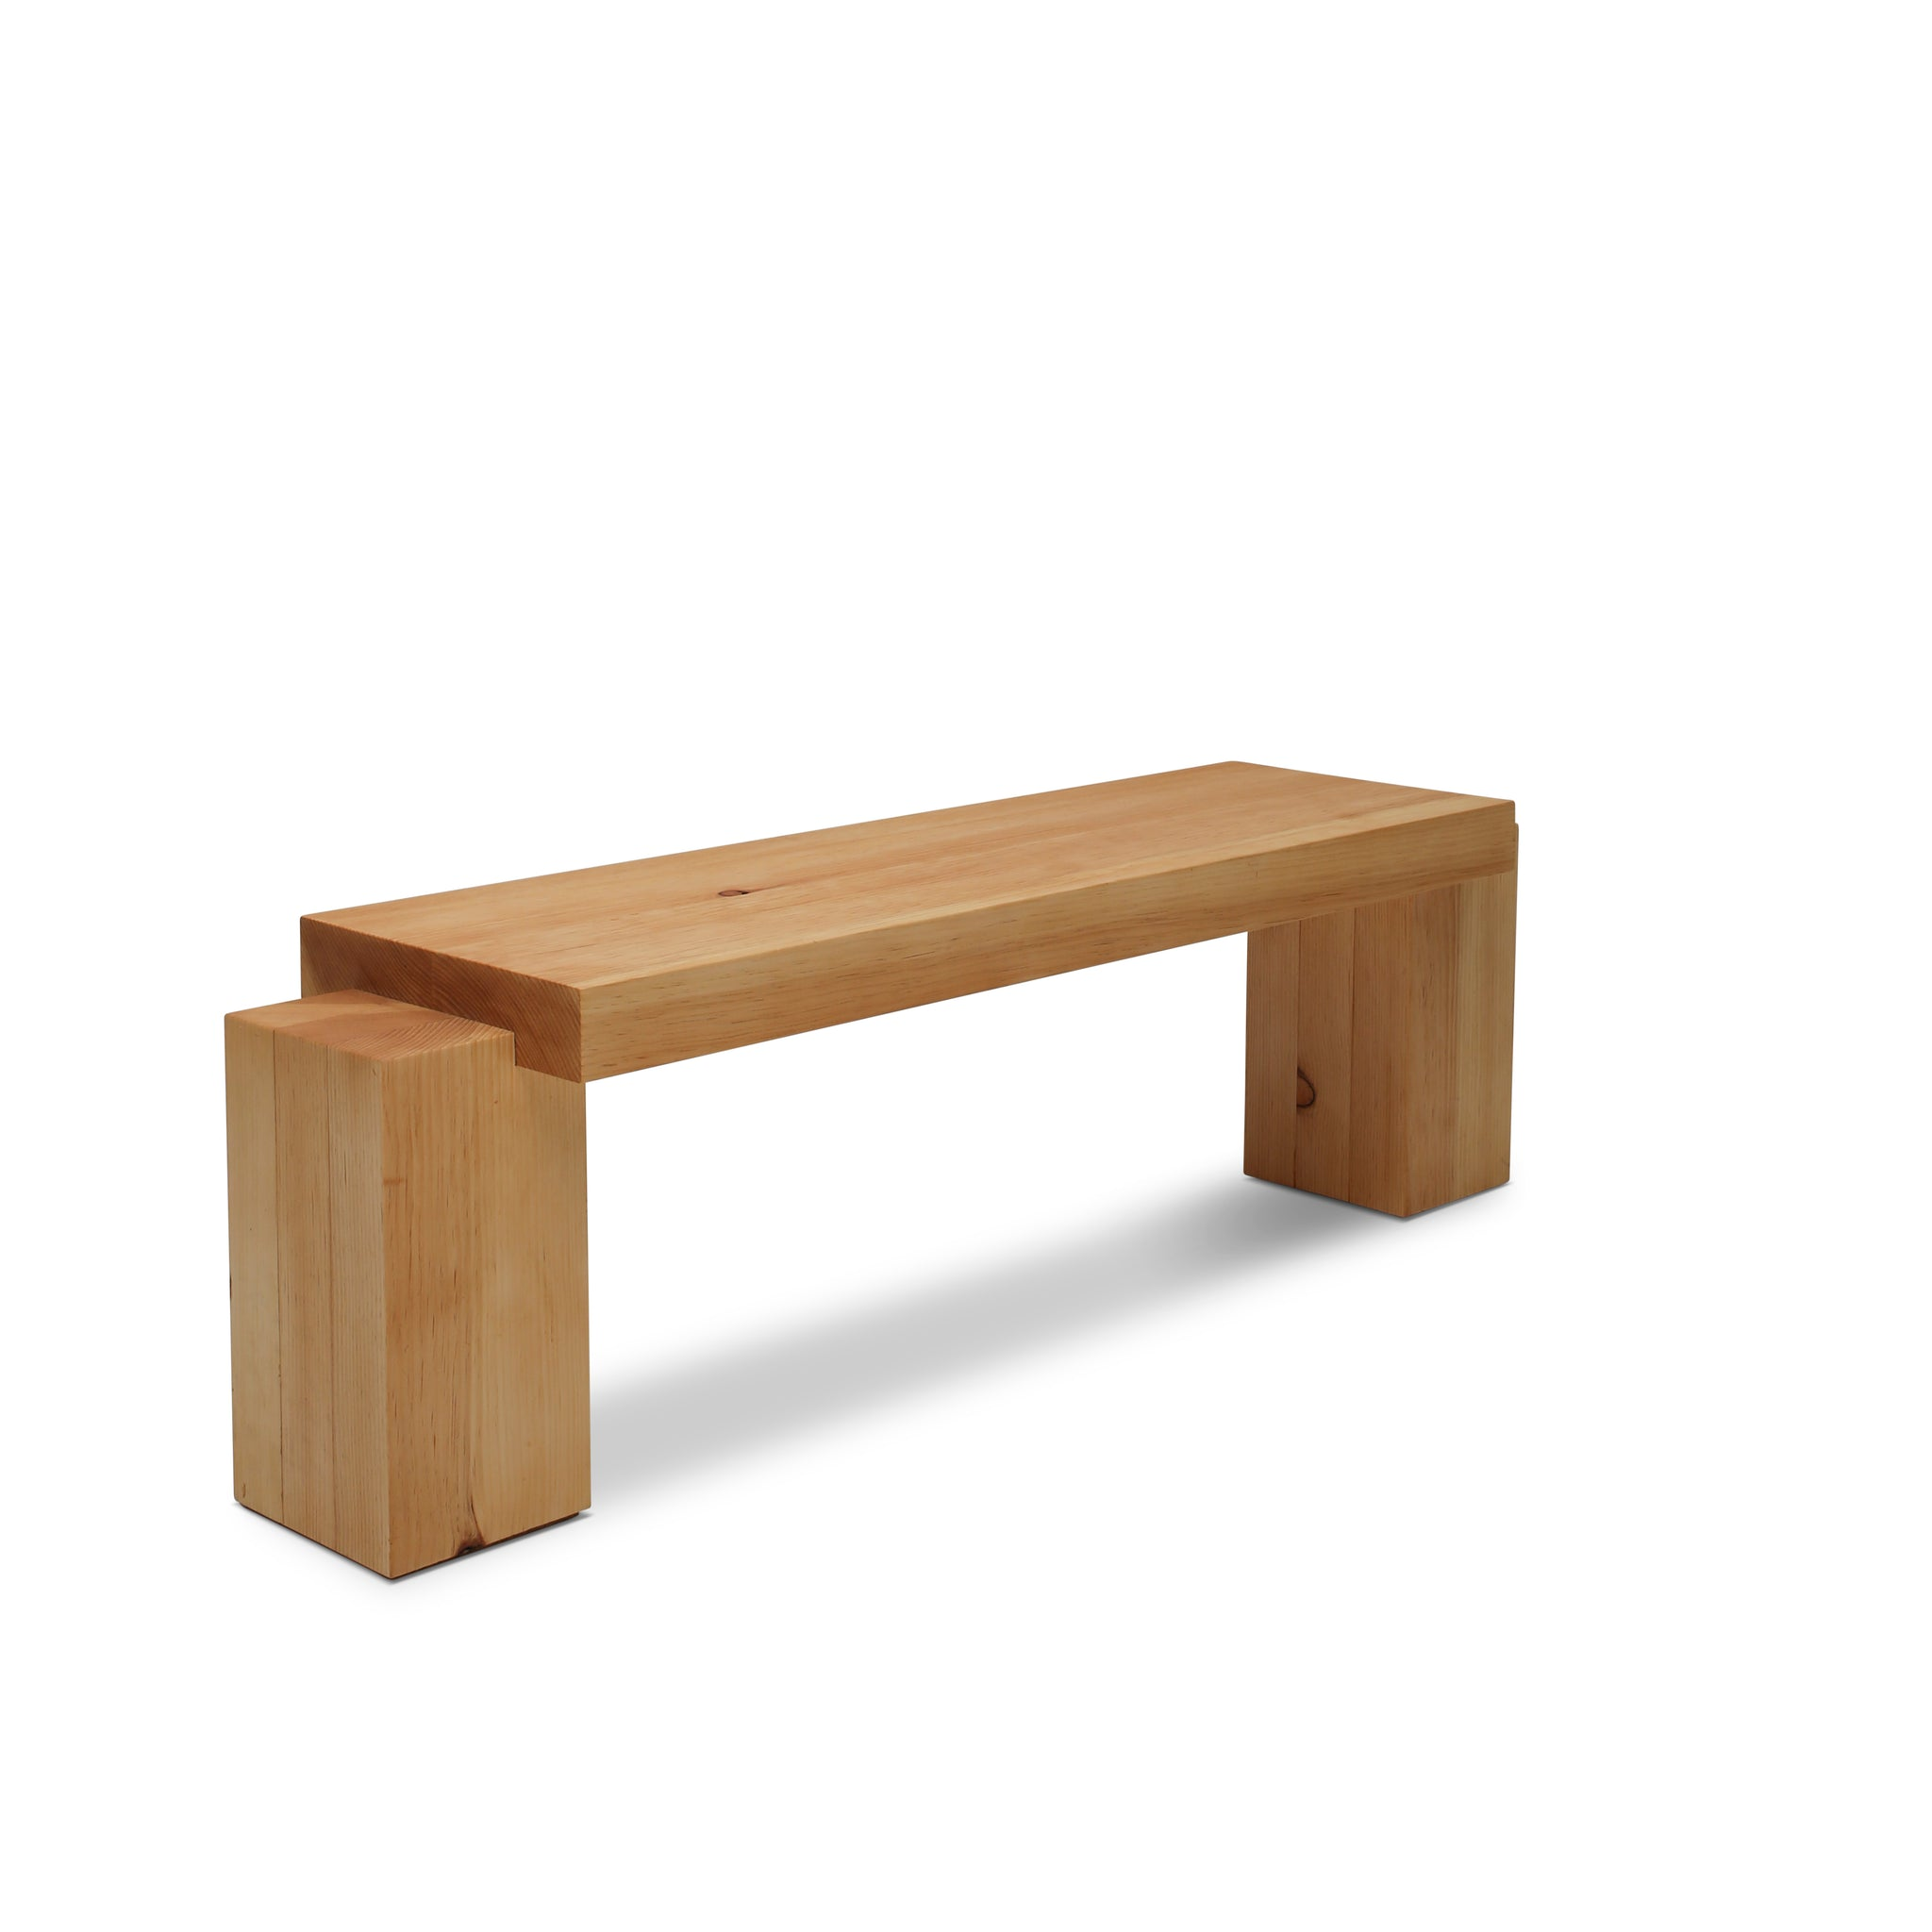 Sintra Bench by Studio Beson